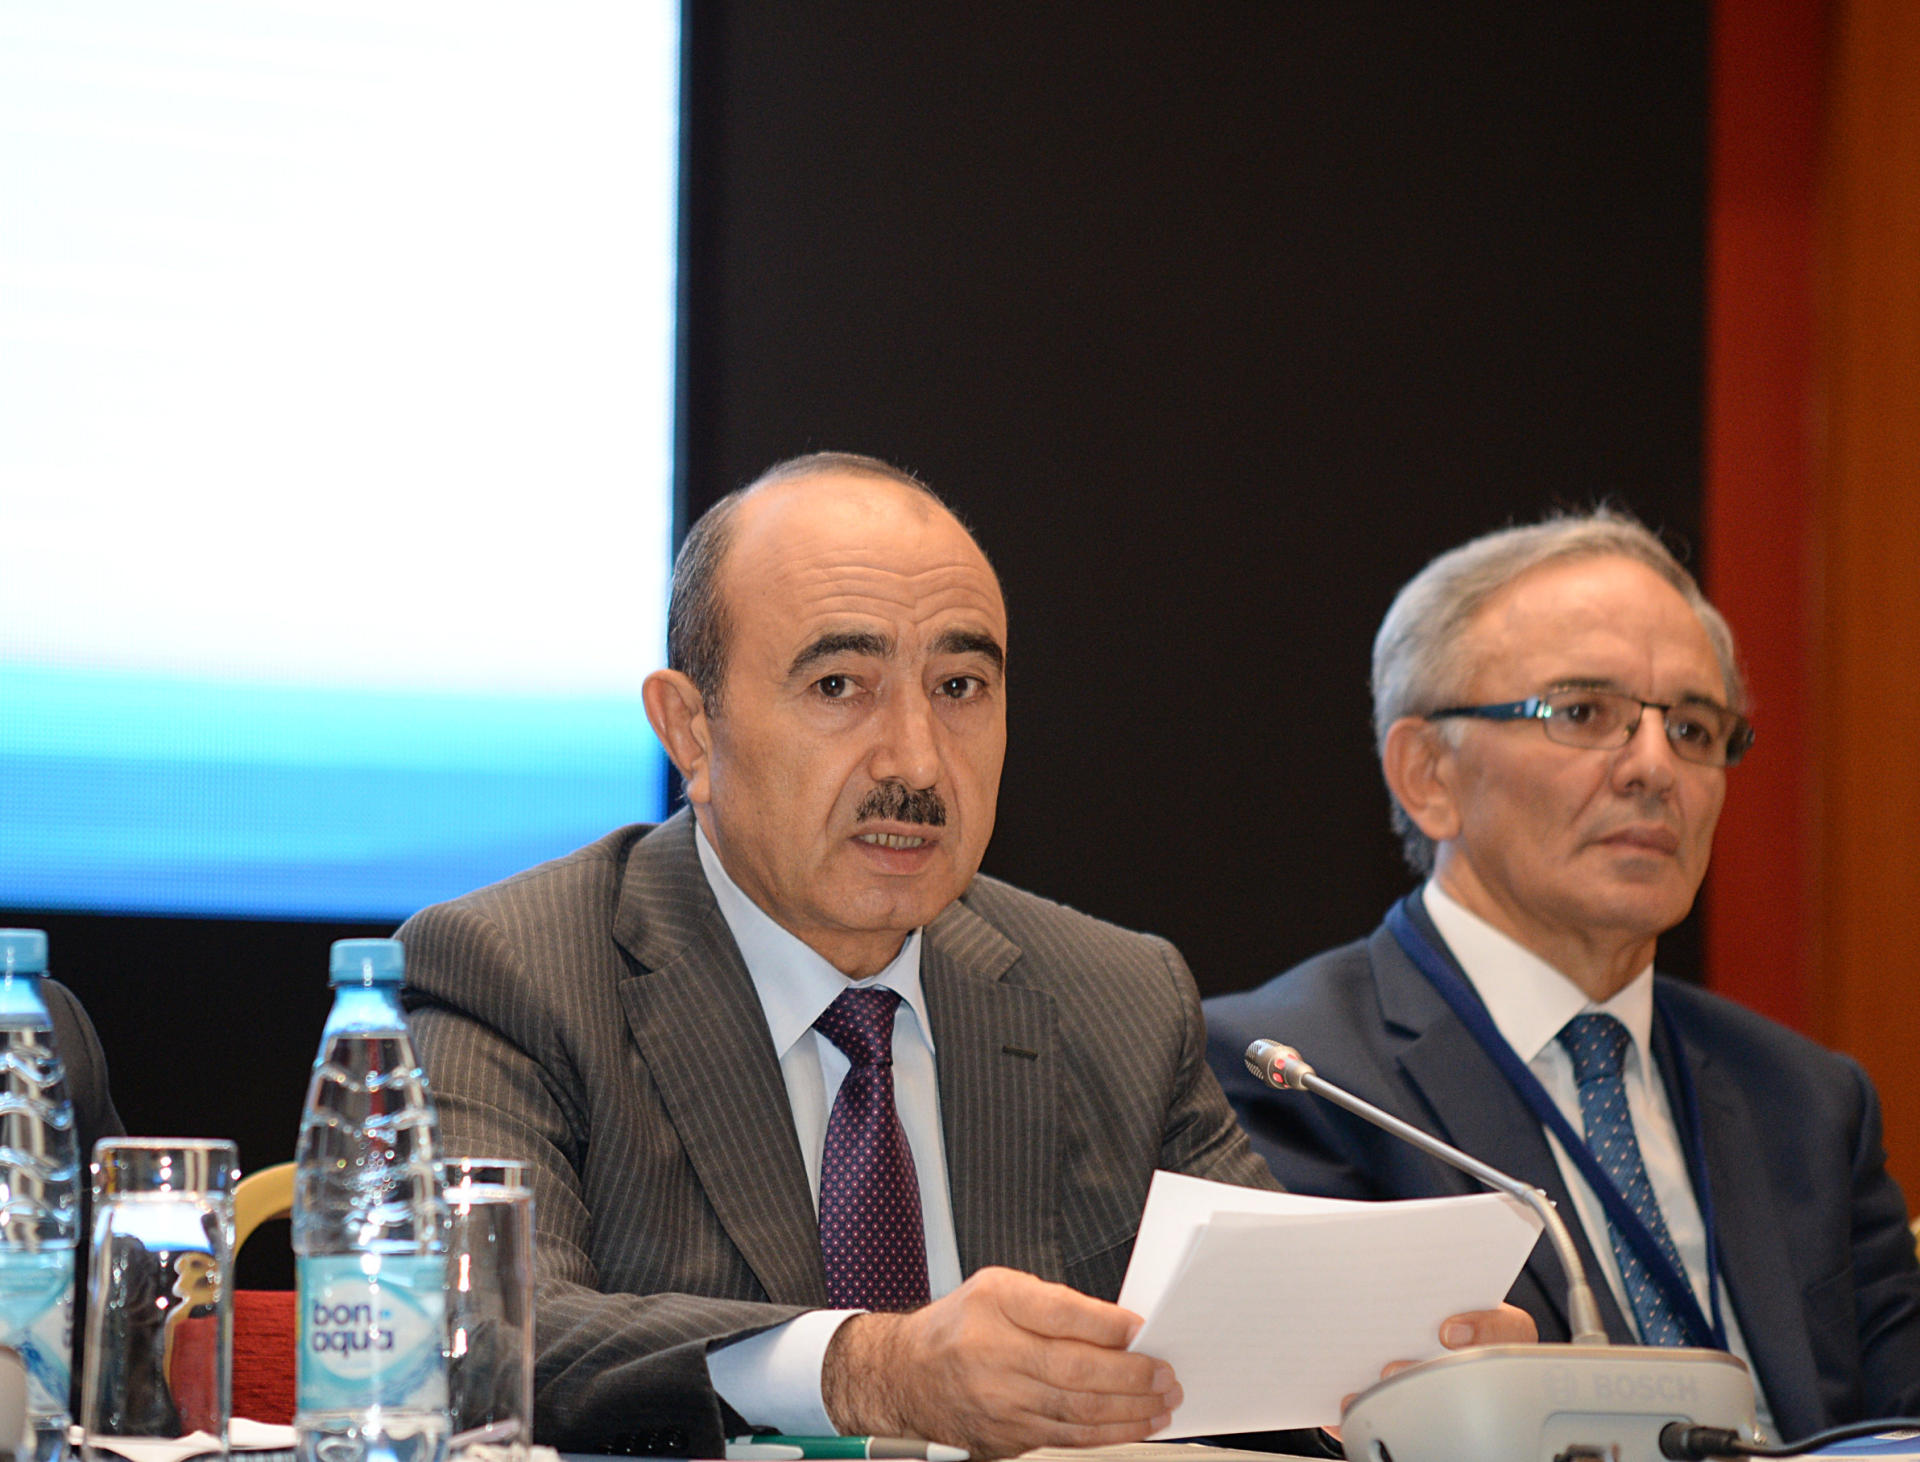 Annual meeting of World Association of Press Councils starts in Baku (PHOTO) - Gallery Image